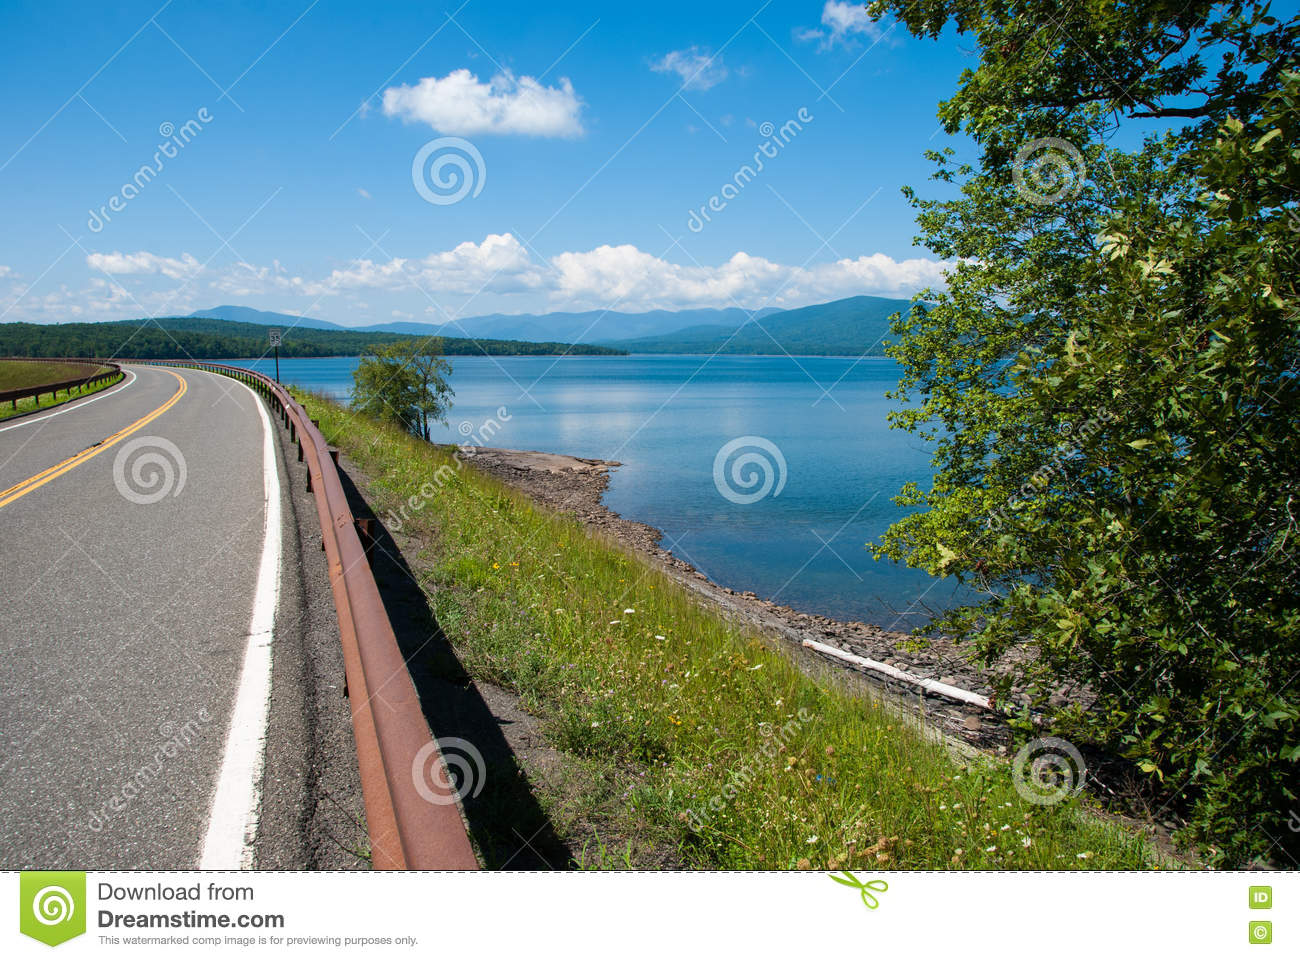 Ashokan Reservoir And Road Stock Photo.